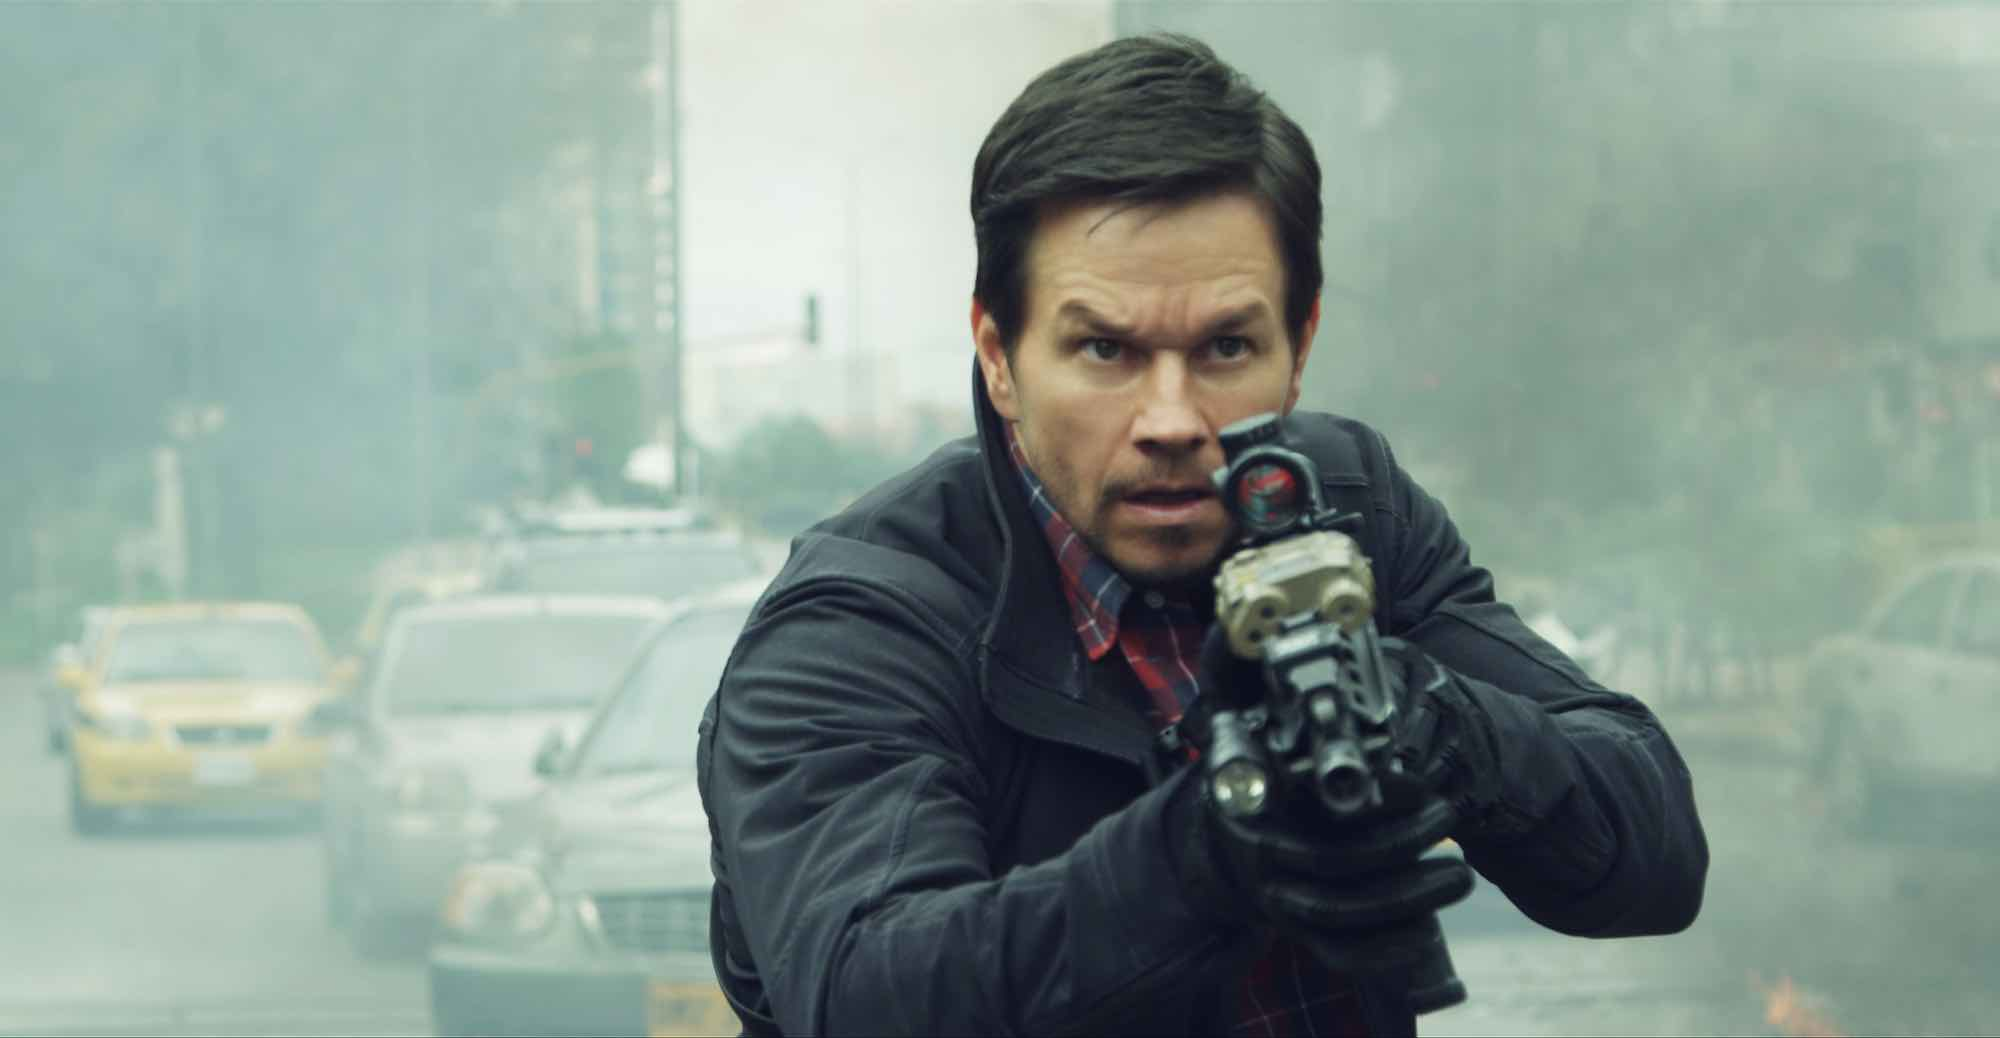 'Mile 22' Trailer: Mark Wahlberg Stays Calm - If Unstable